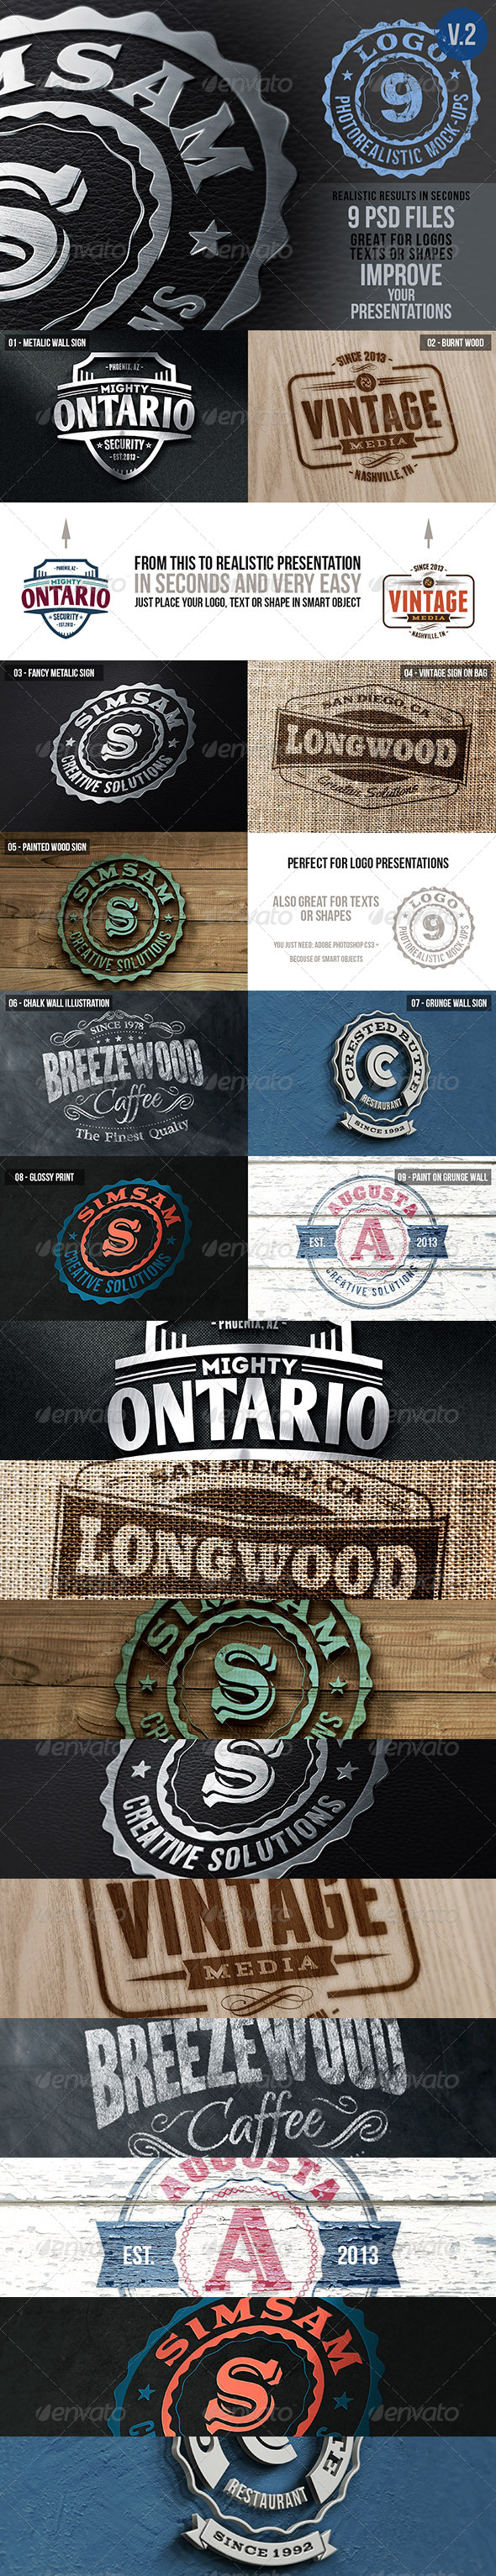 Photorealistic Logo Mock-Ups Vol.2 - Logo Product Mock-Ups